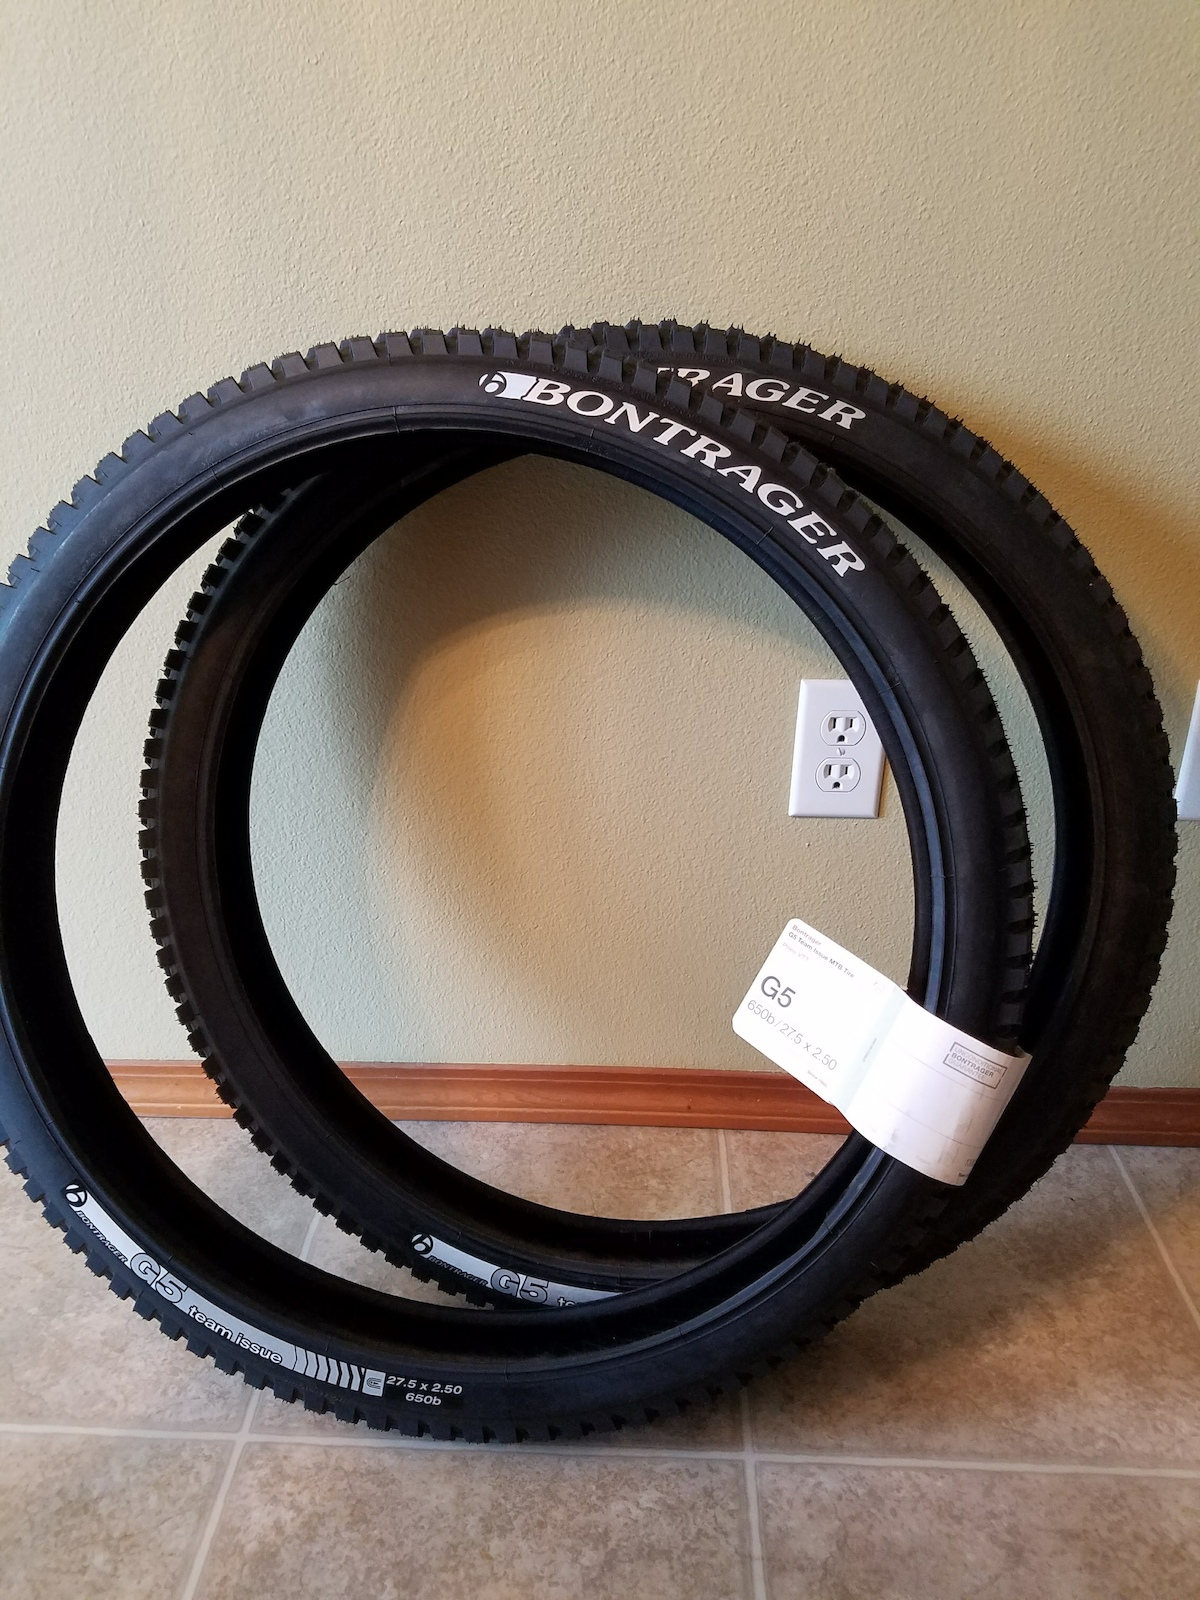 2016 Bontrager G5 team issue mtb tire